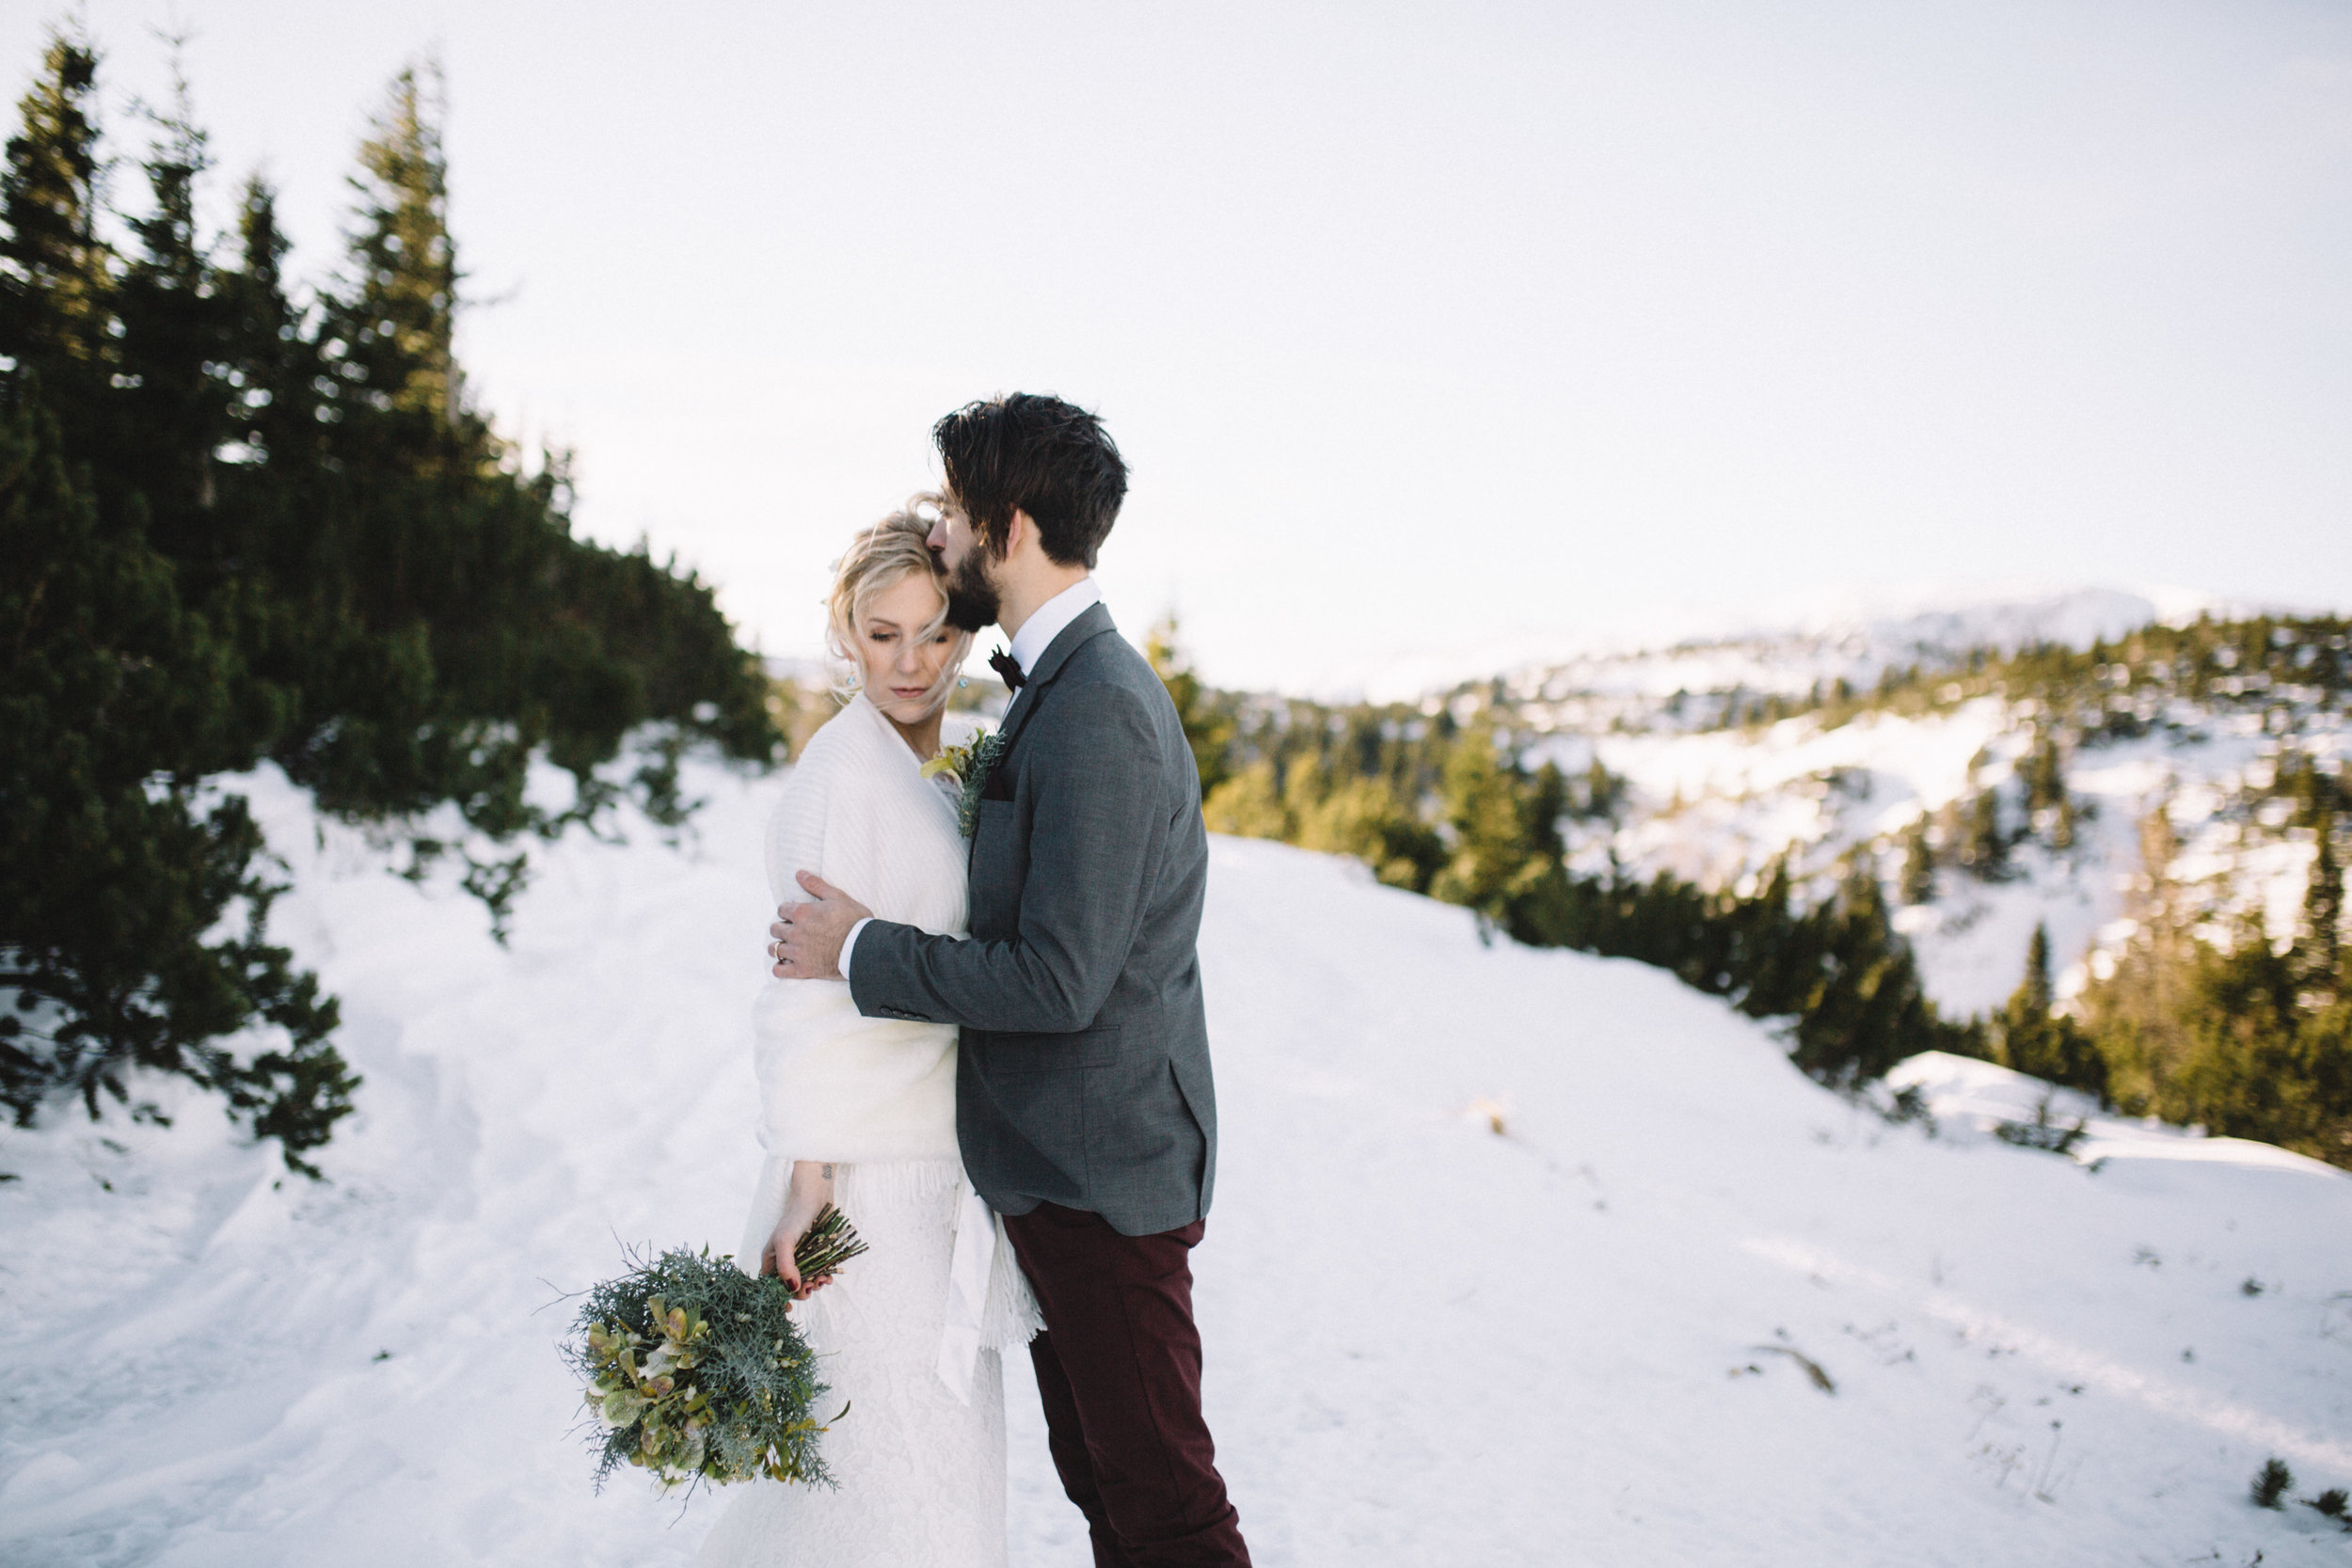 Moutain Winter Wedding-27.jpg